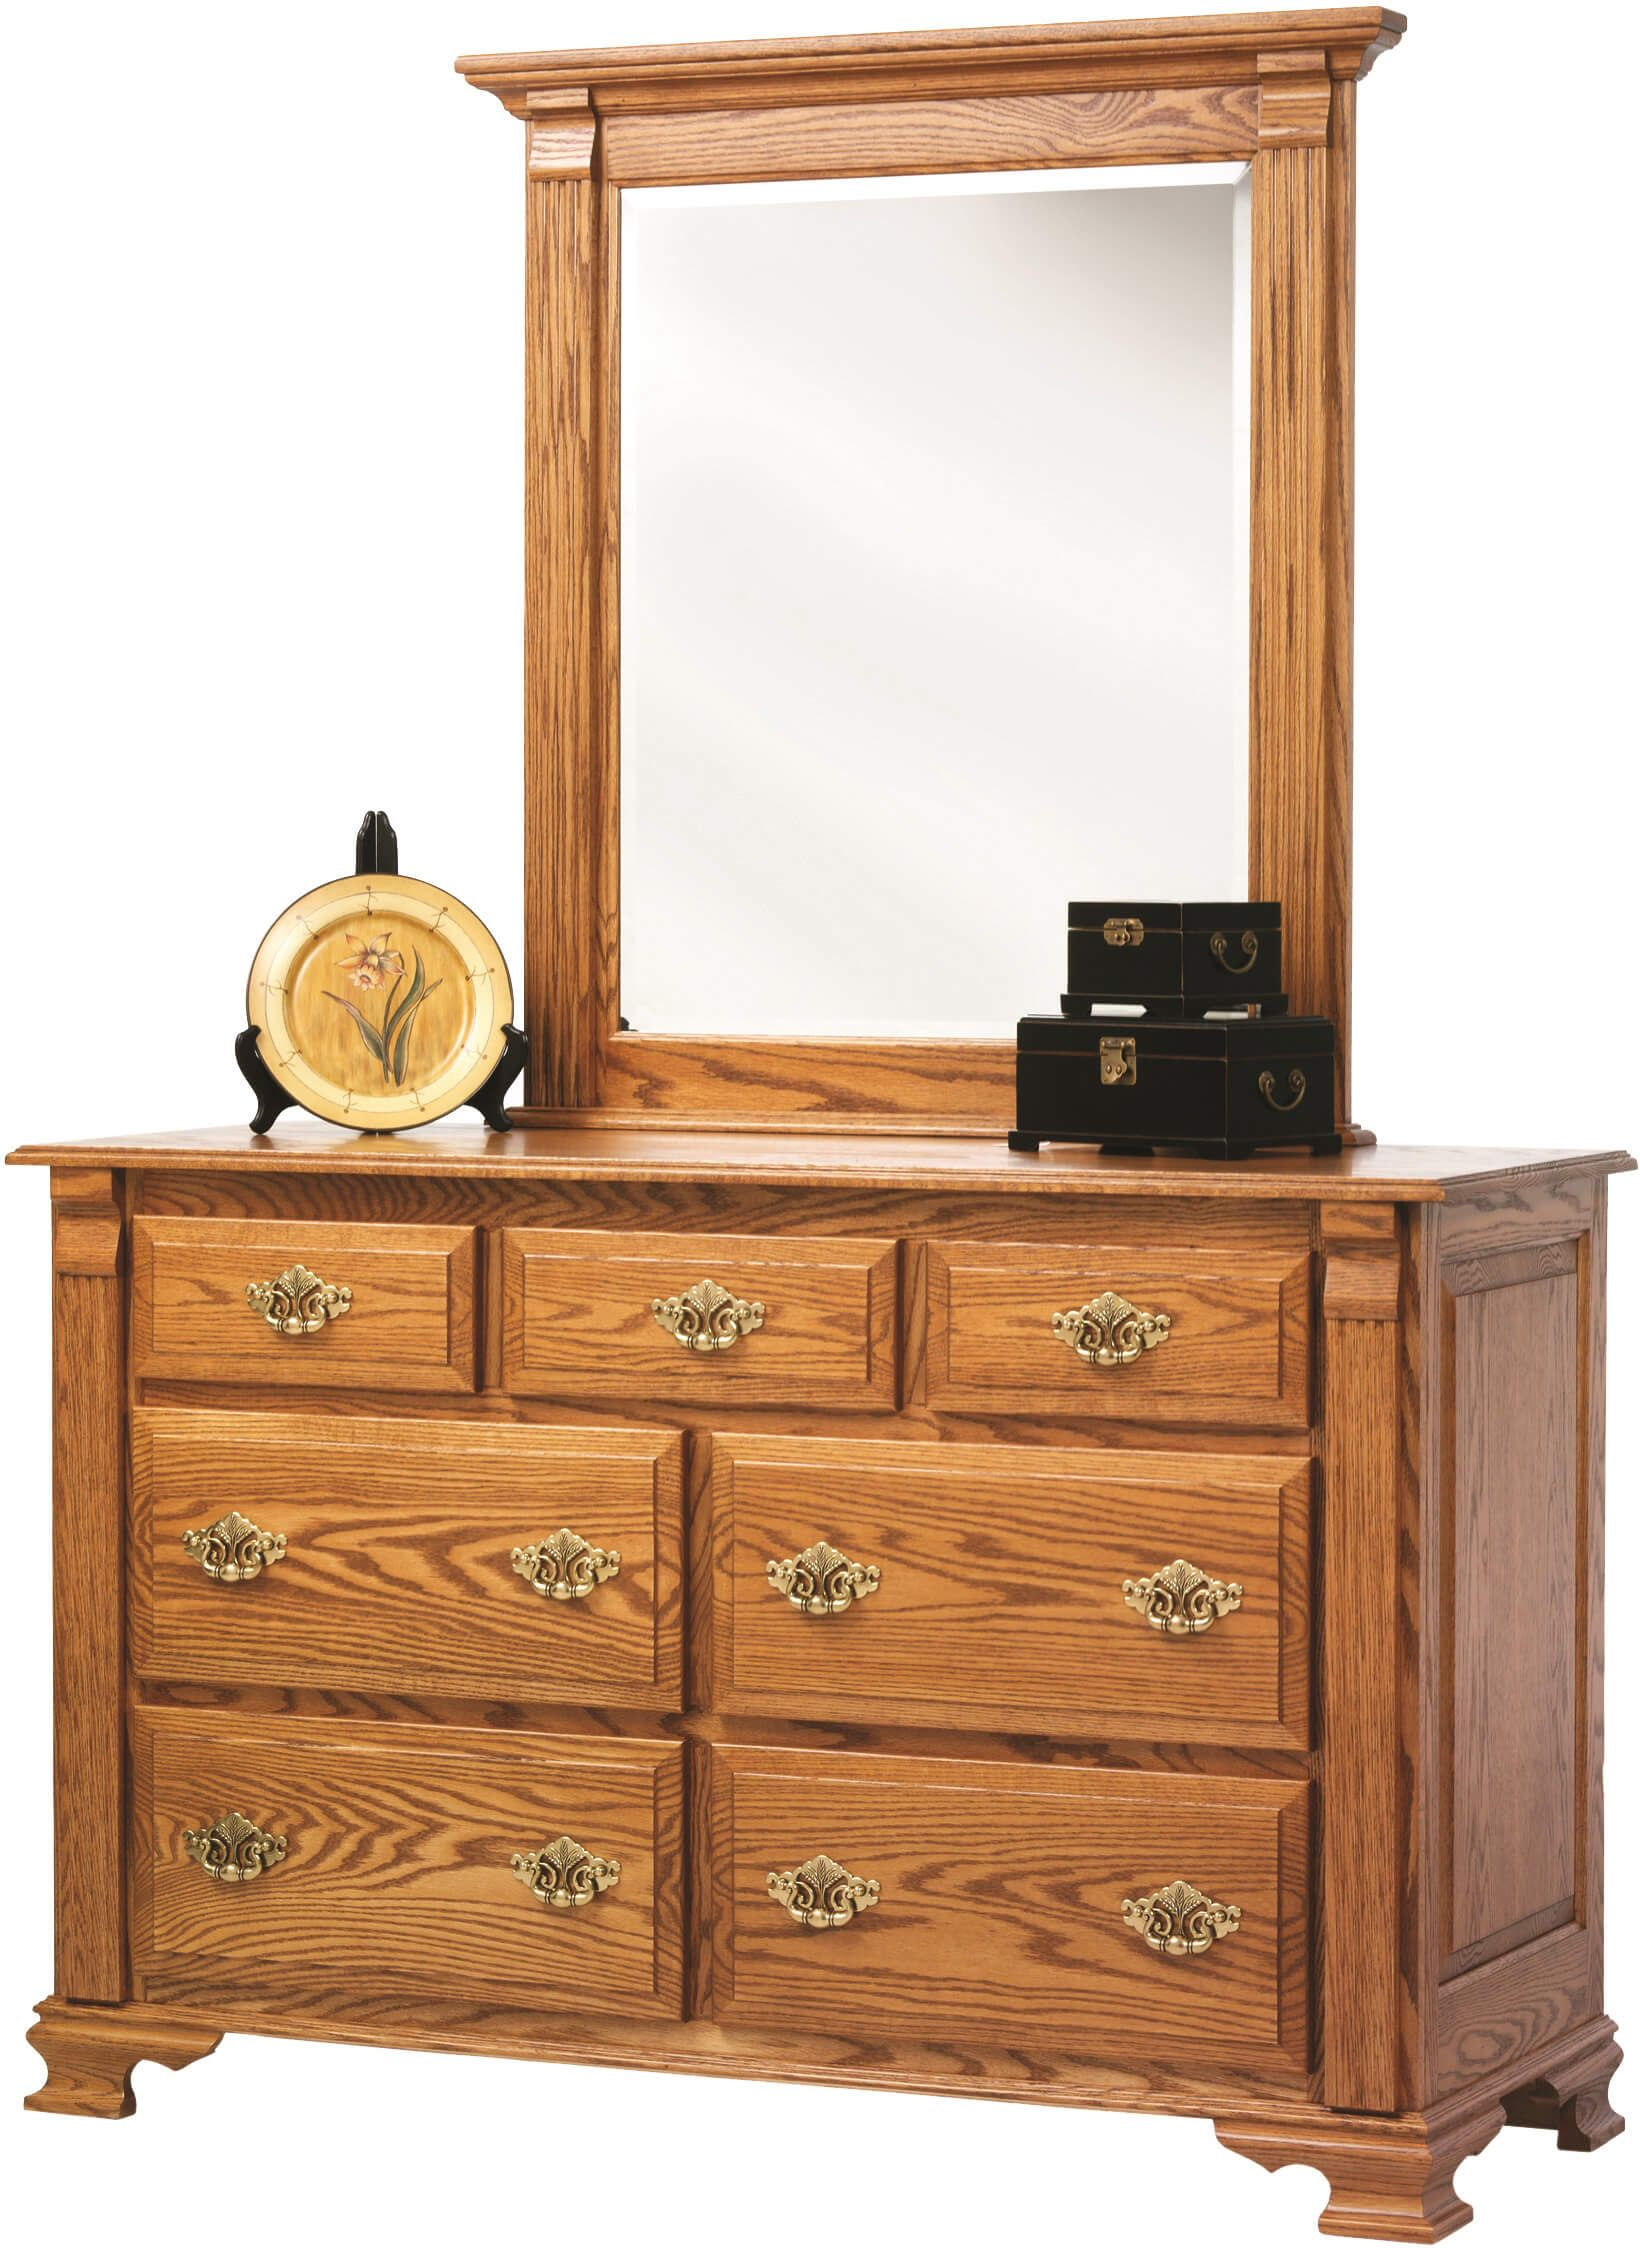 Seneca Creek Amish Dresser